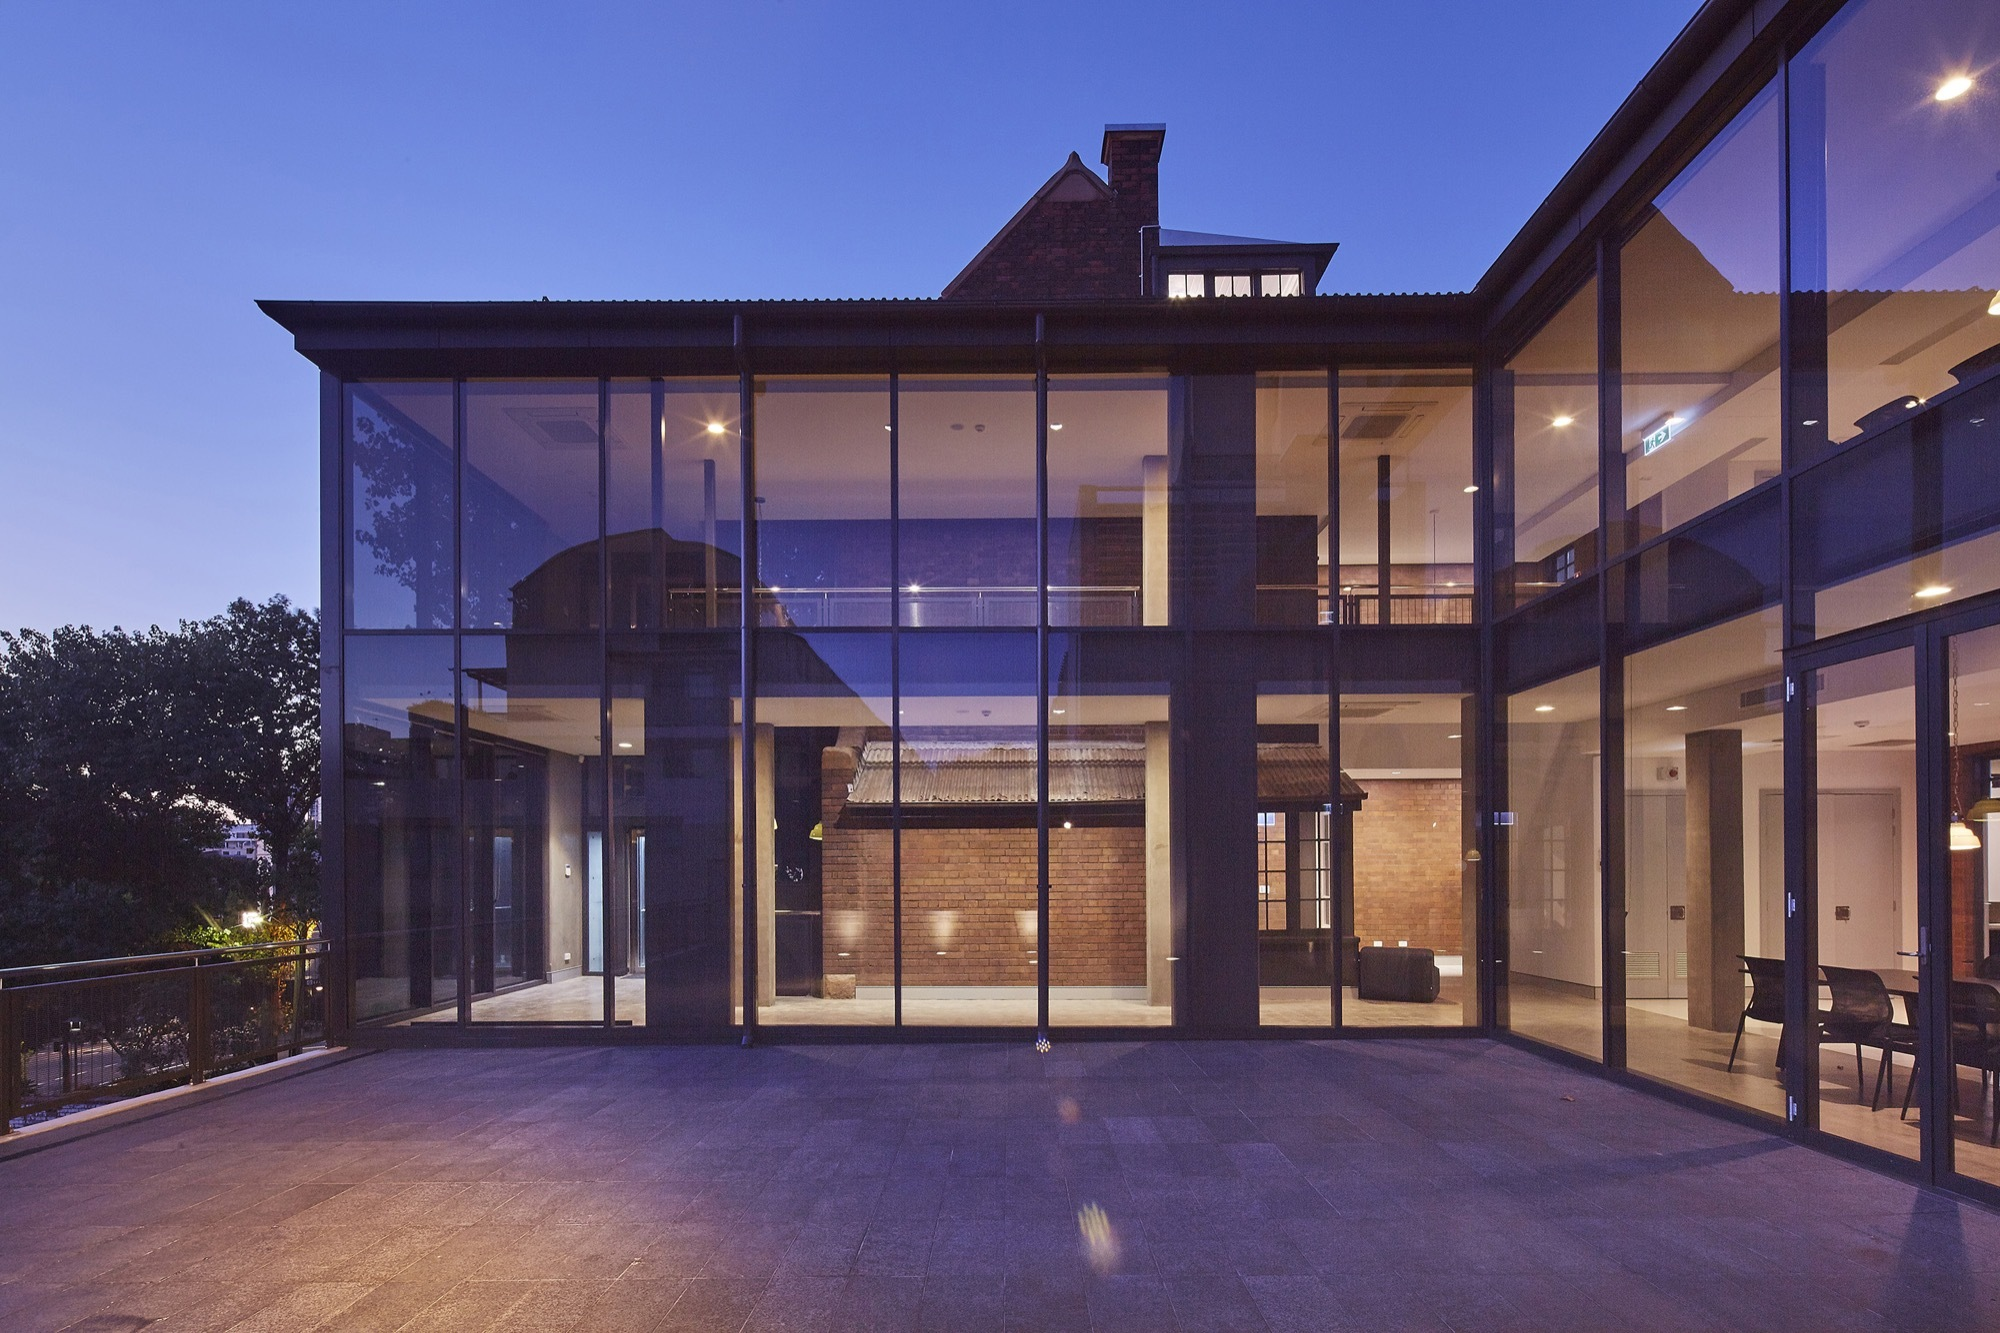 Fire Station architecture and design | ArchDaily